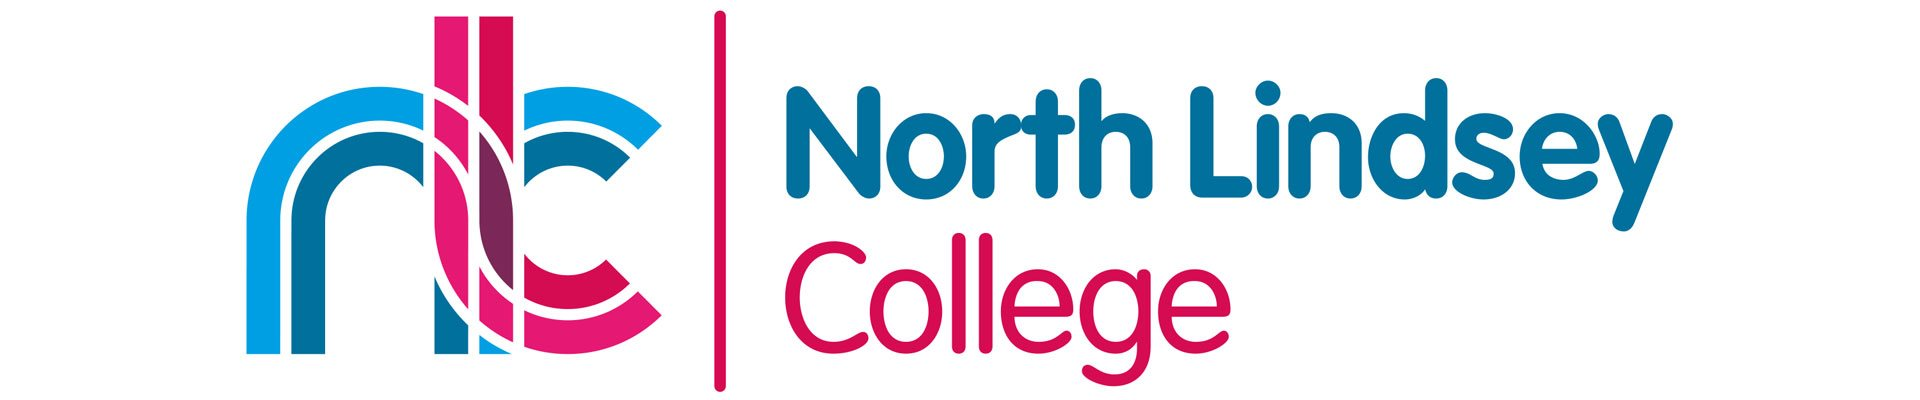 North Lindsey College Fun Run 2018 banner